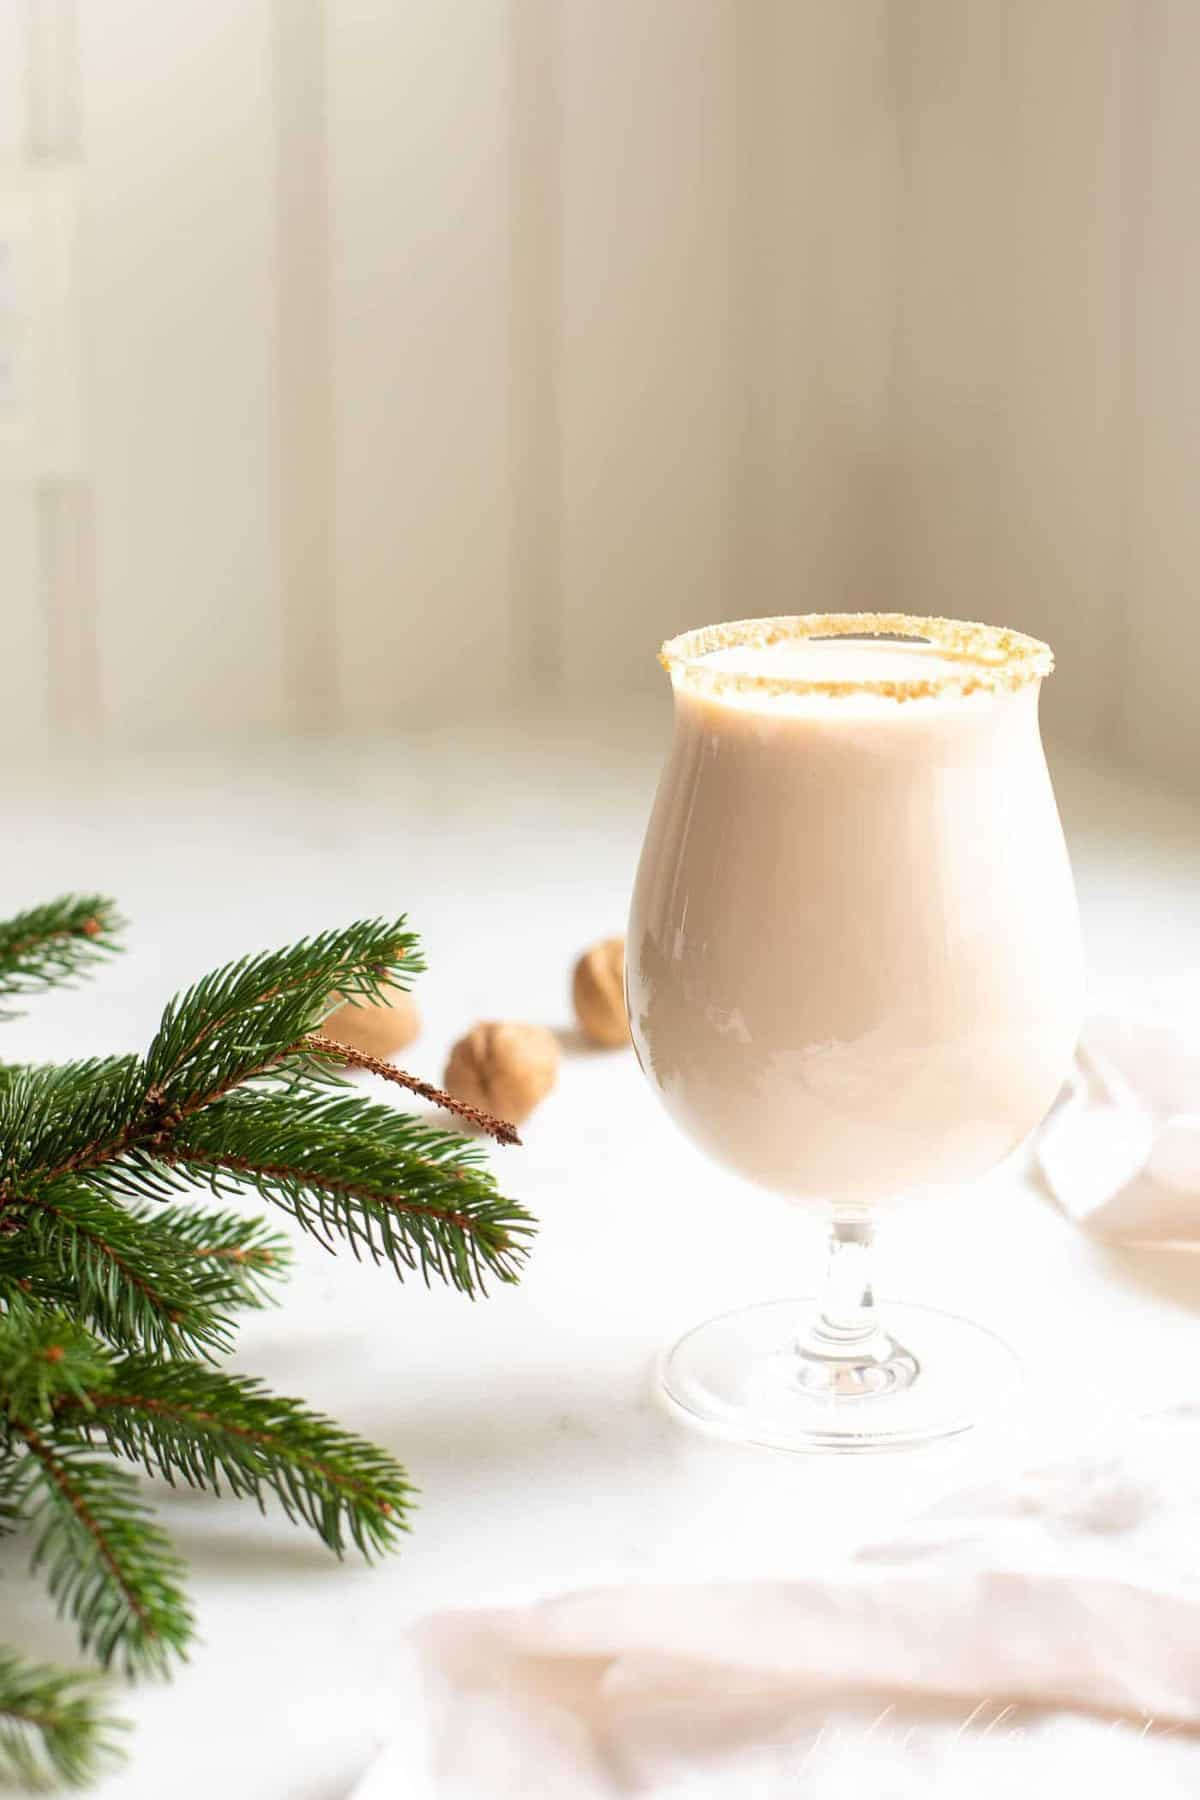 A clear glass with an oatmeal cookie drink, hazelnuts and greenery to the side.